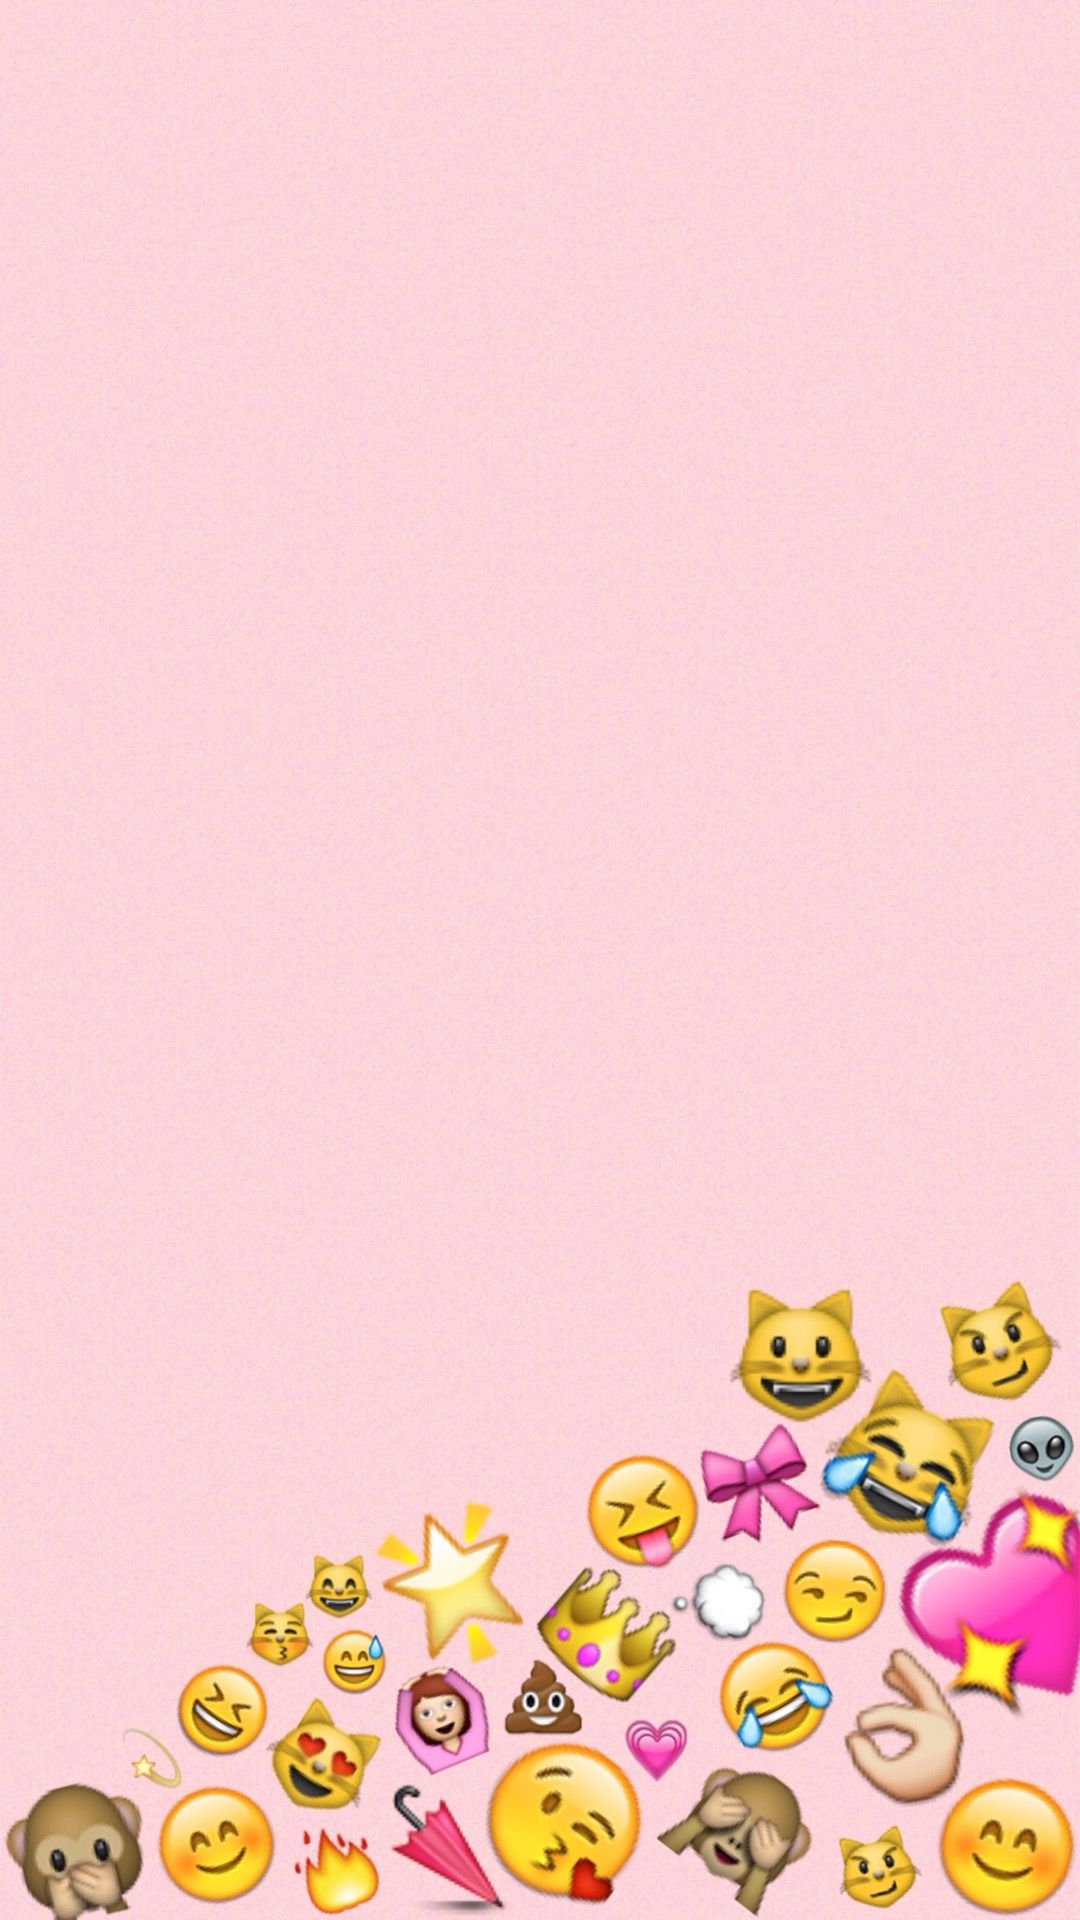 Pin by رهان 🦋 Rehan on خلفيات موبايل Wallpapers Emoji